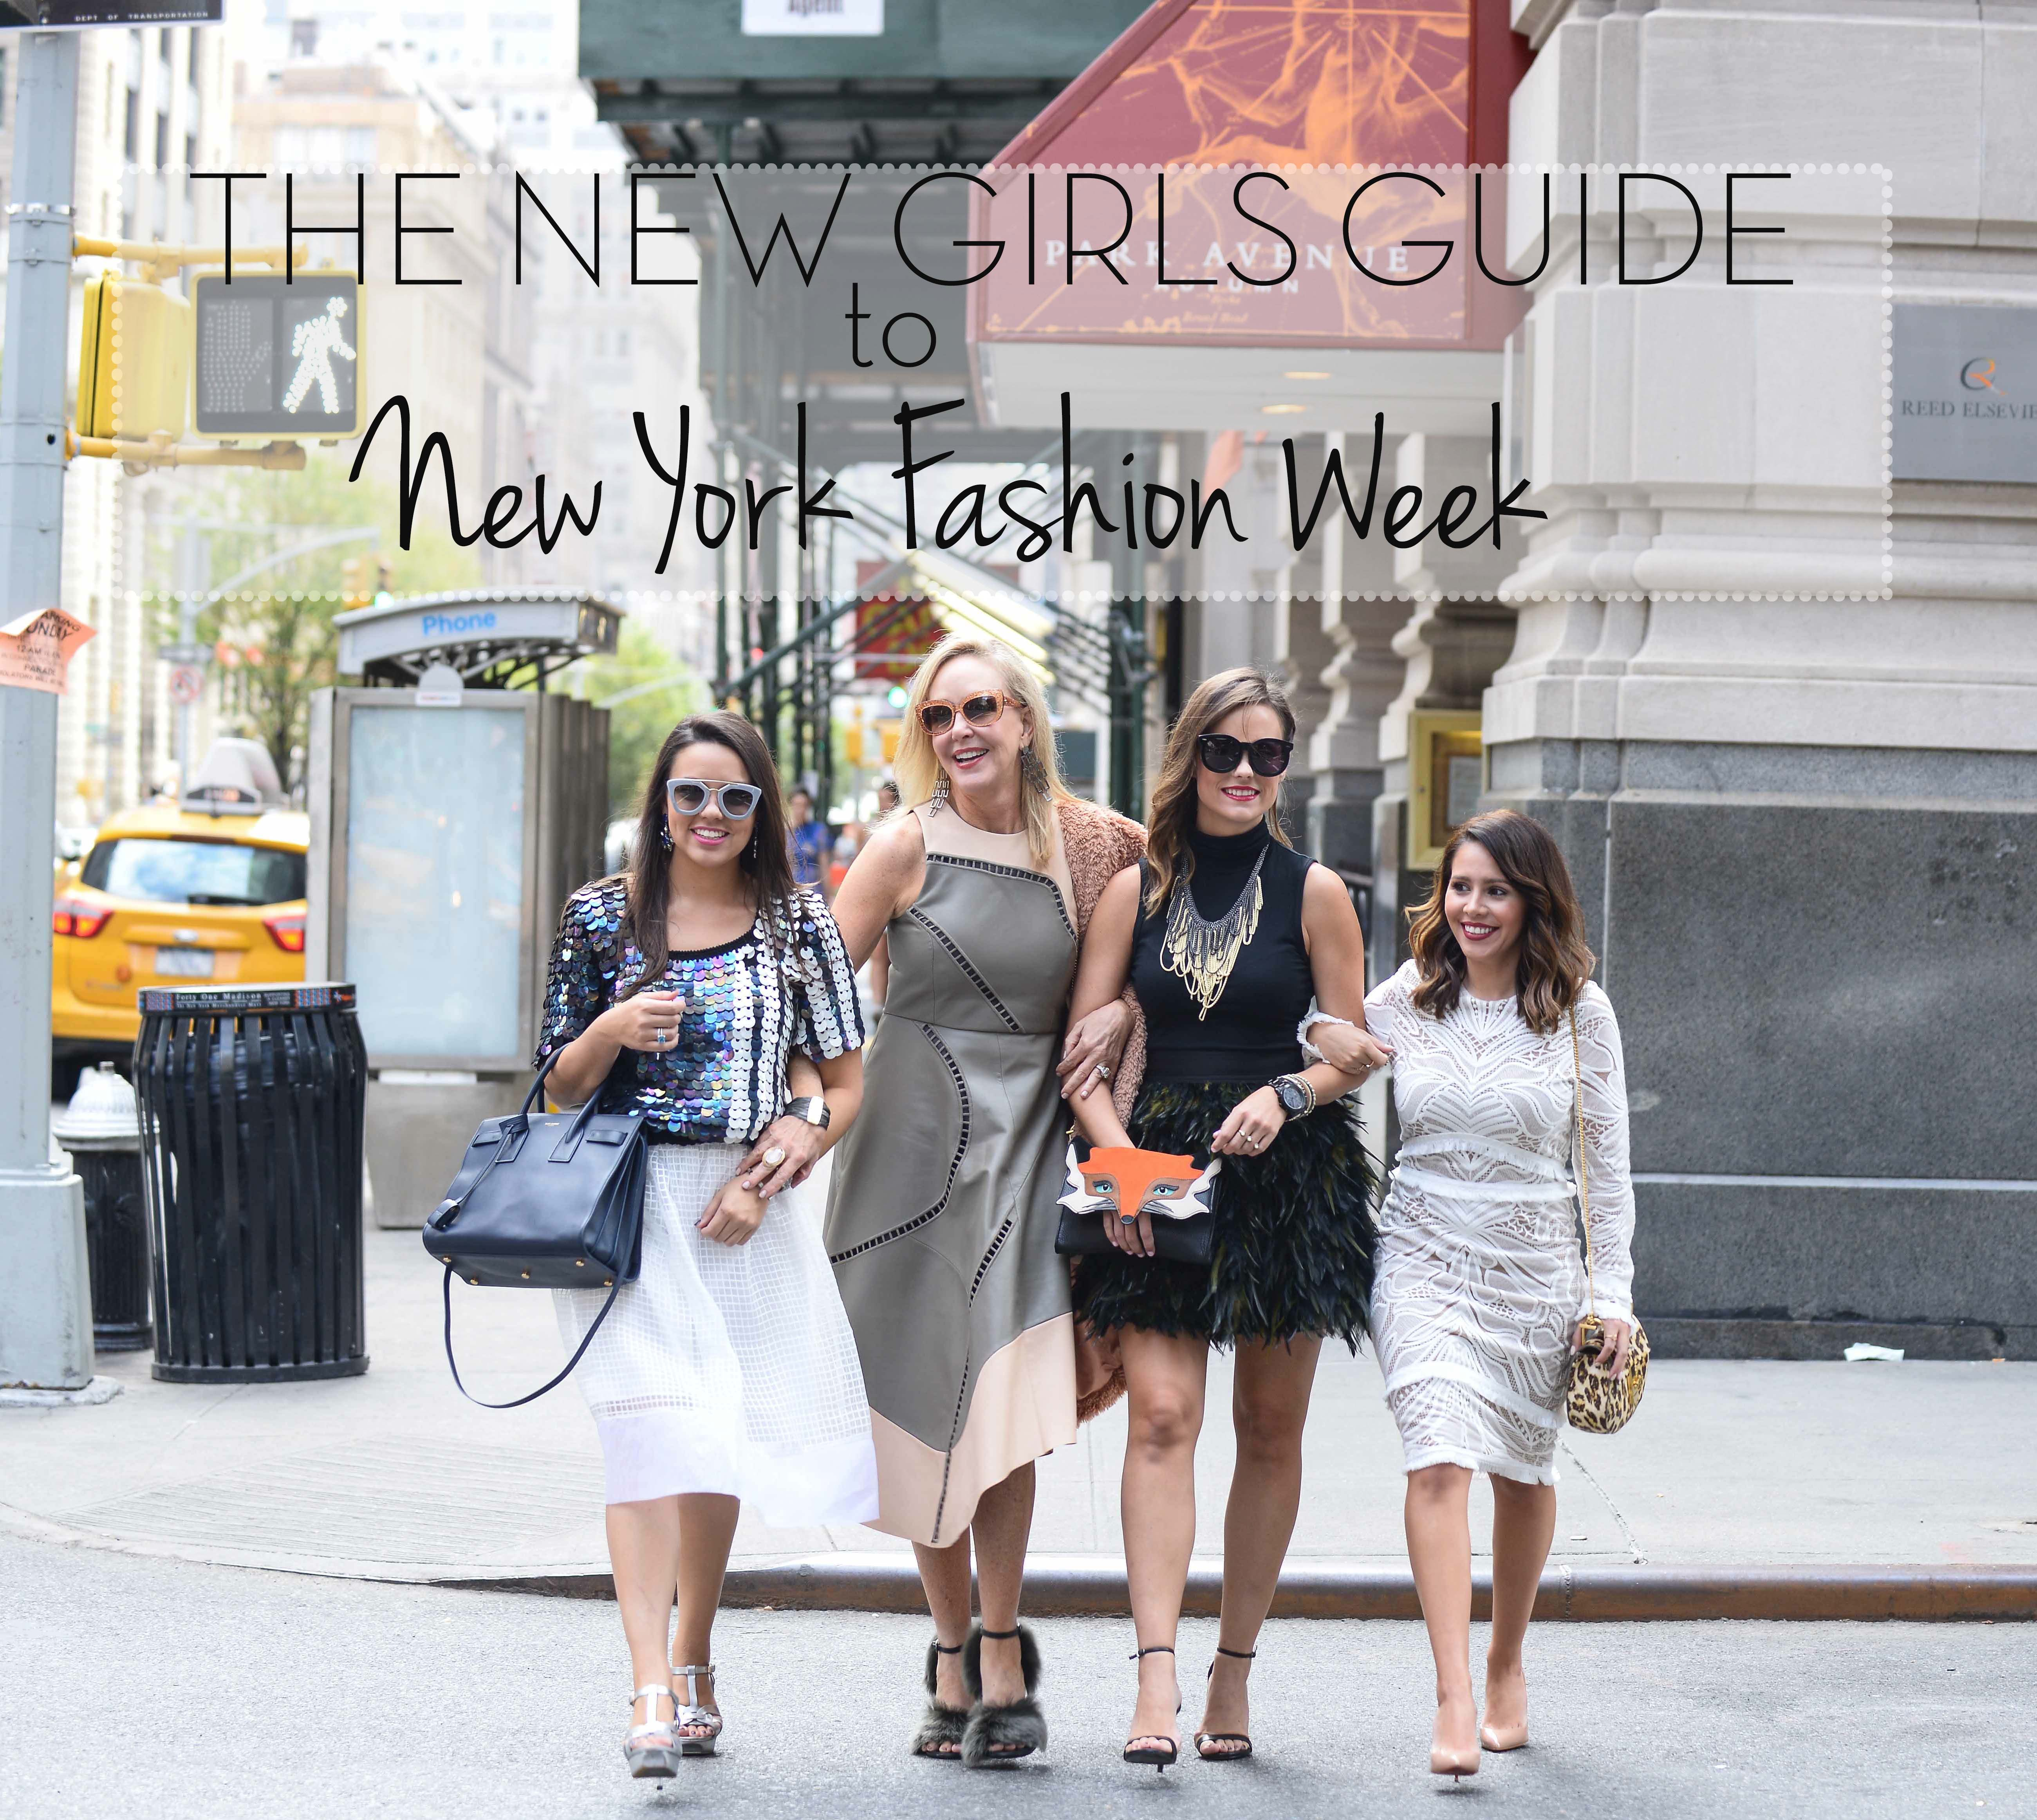 The New Girls Guide to NYFW